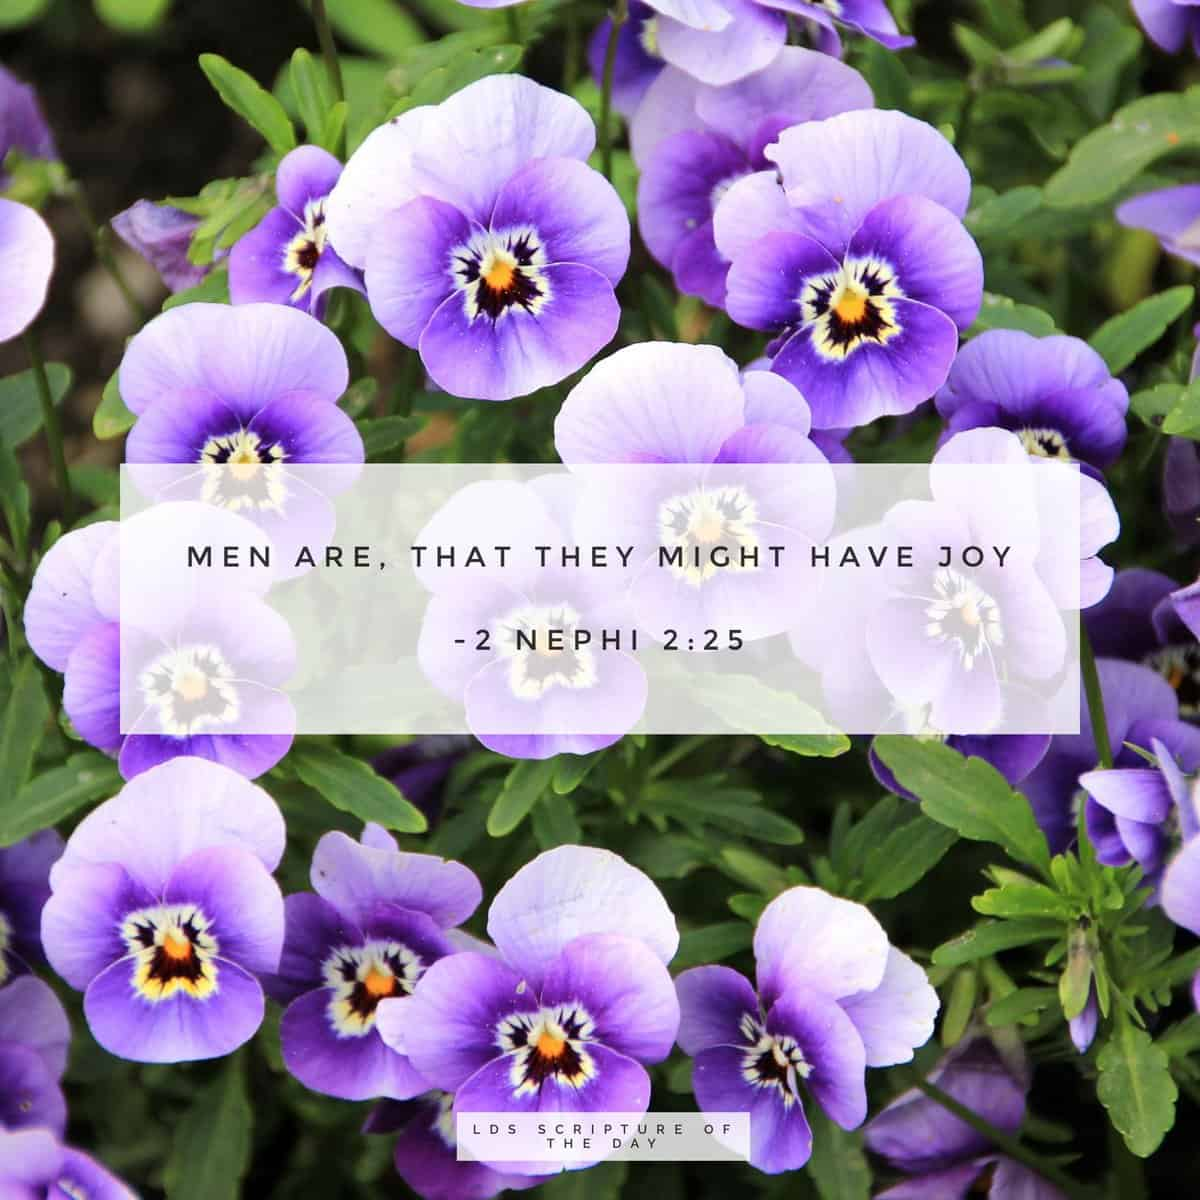 men are, that they might have joy. 2 Nephi 2:25